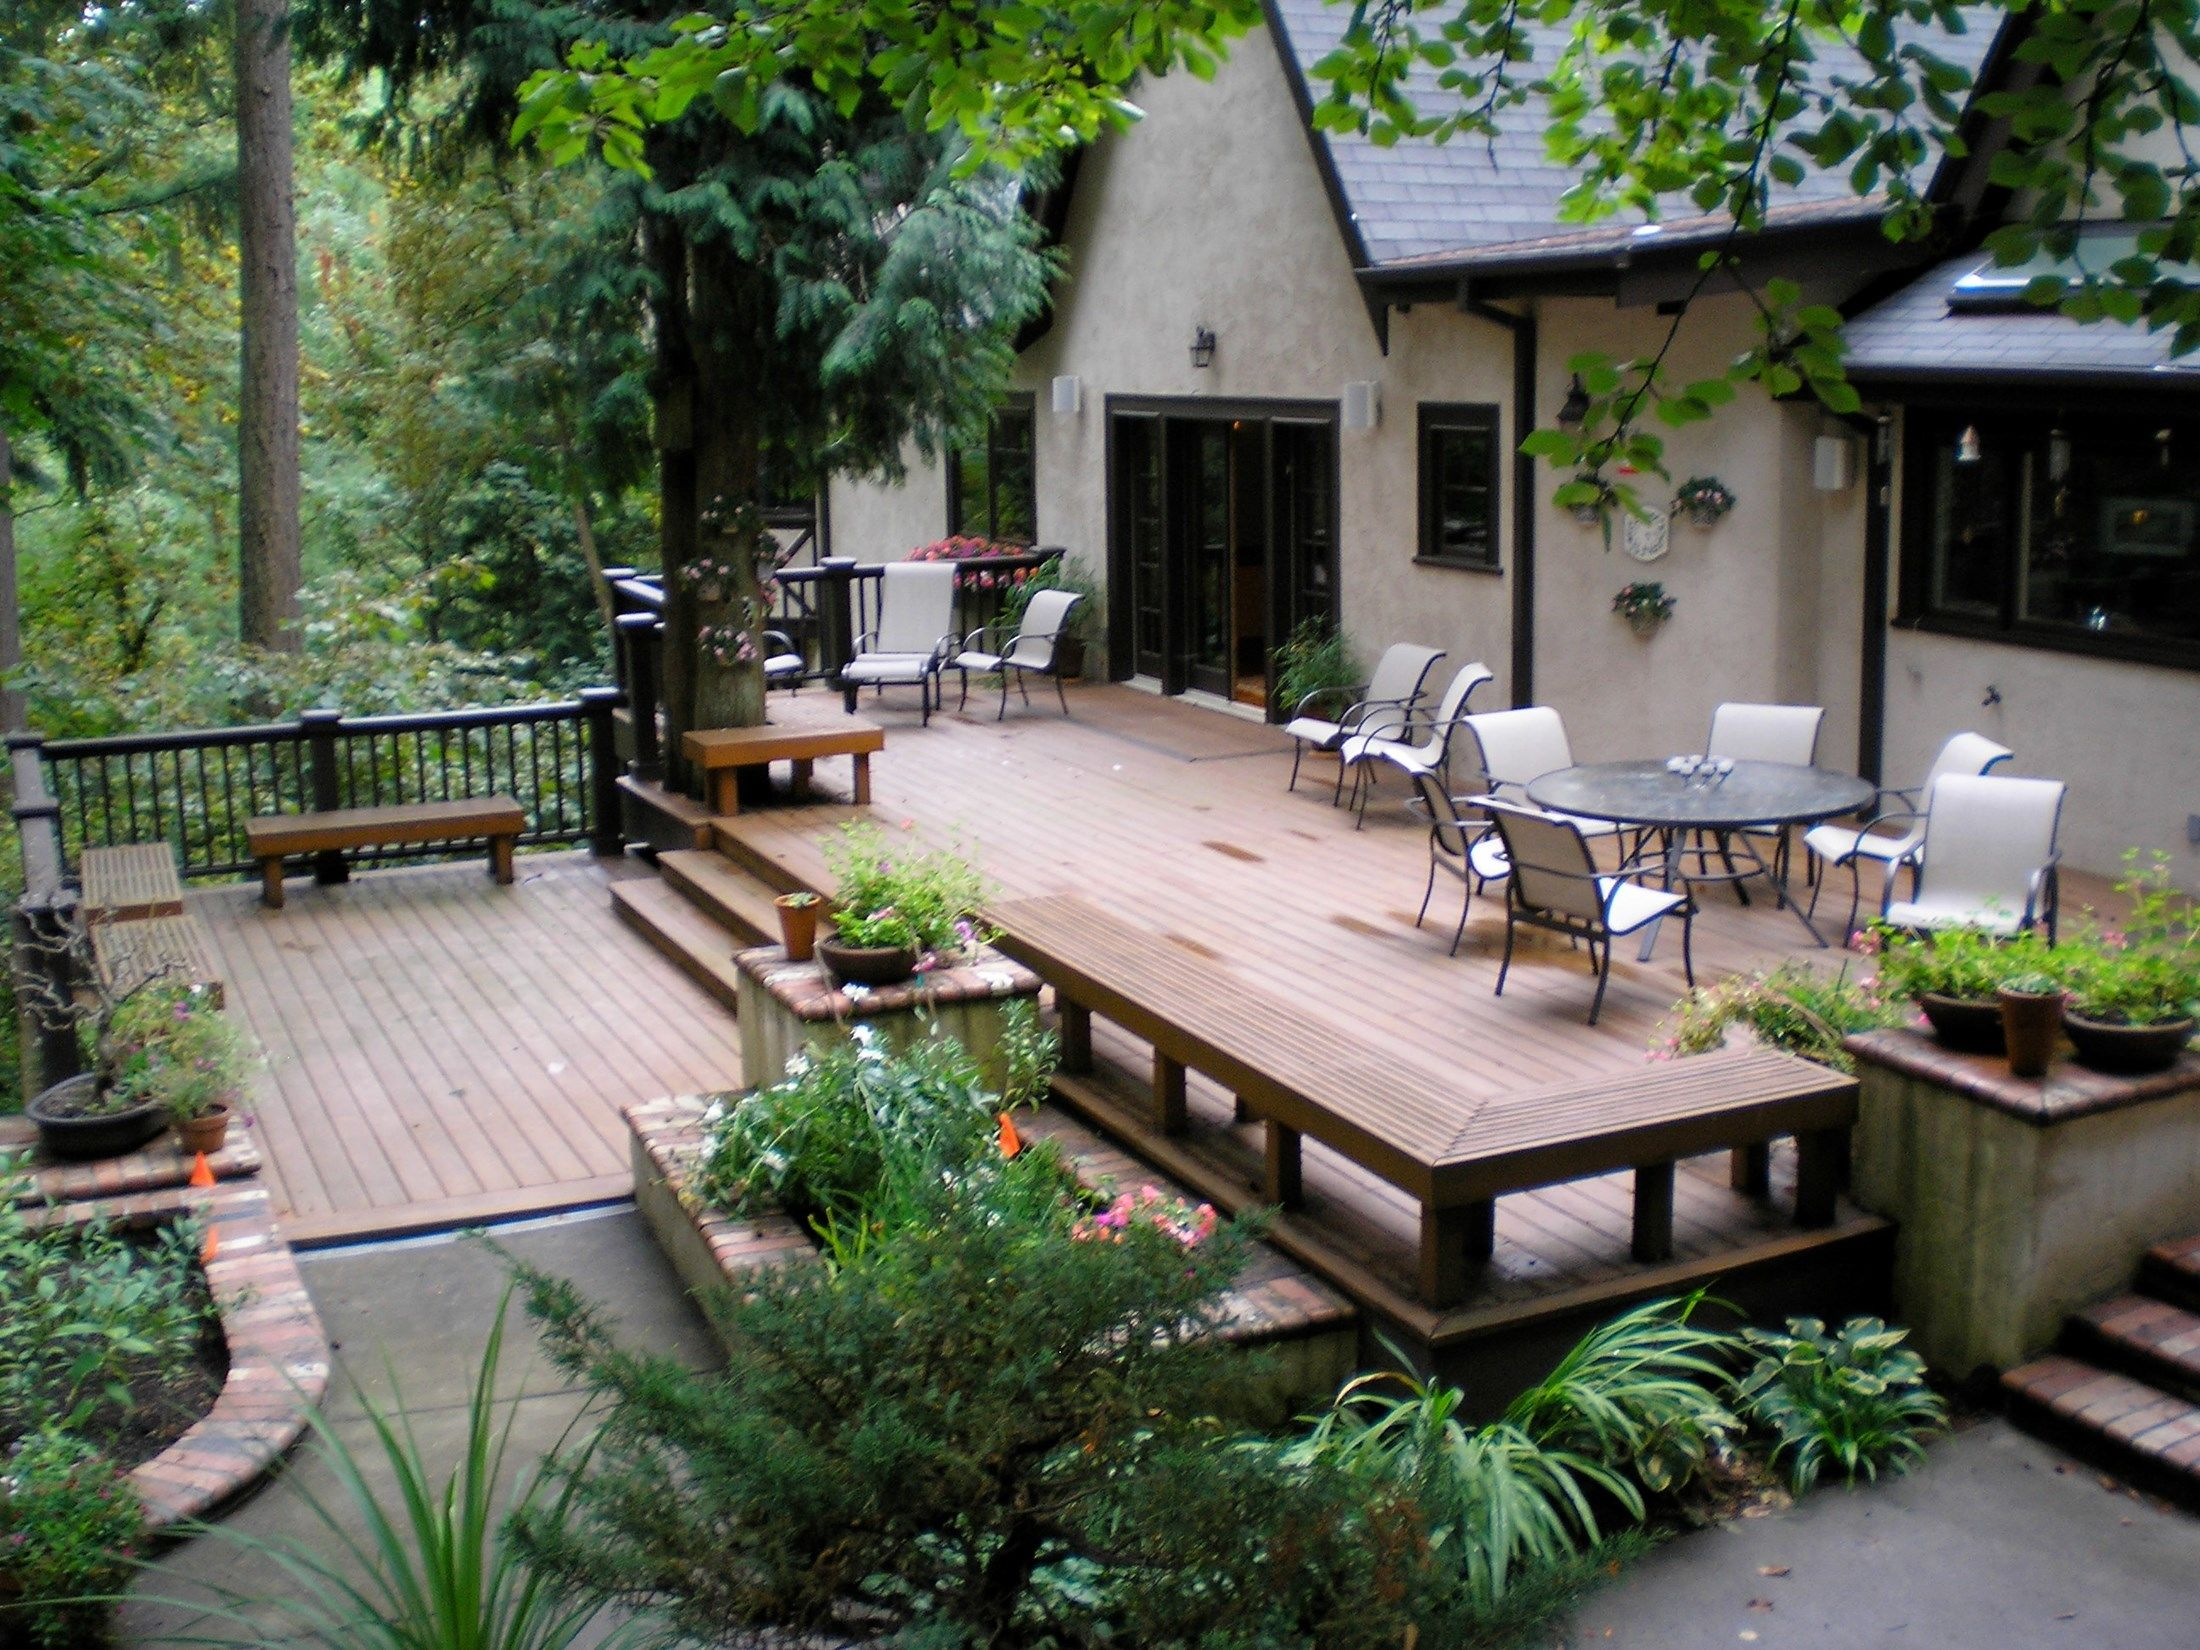 Deckscom Deck Idea Pictures - Backyard deck ideas